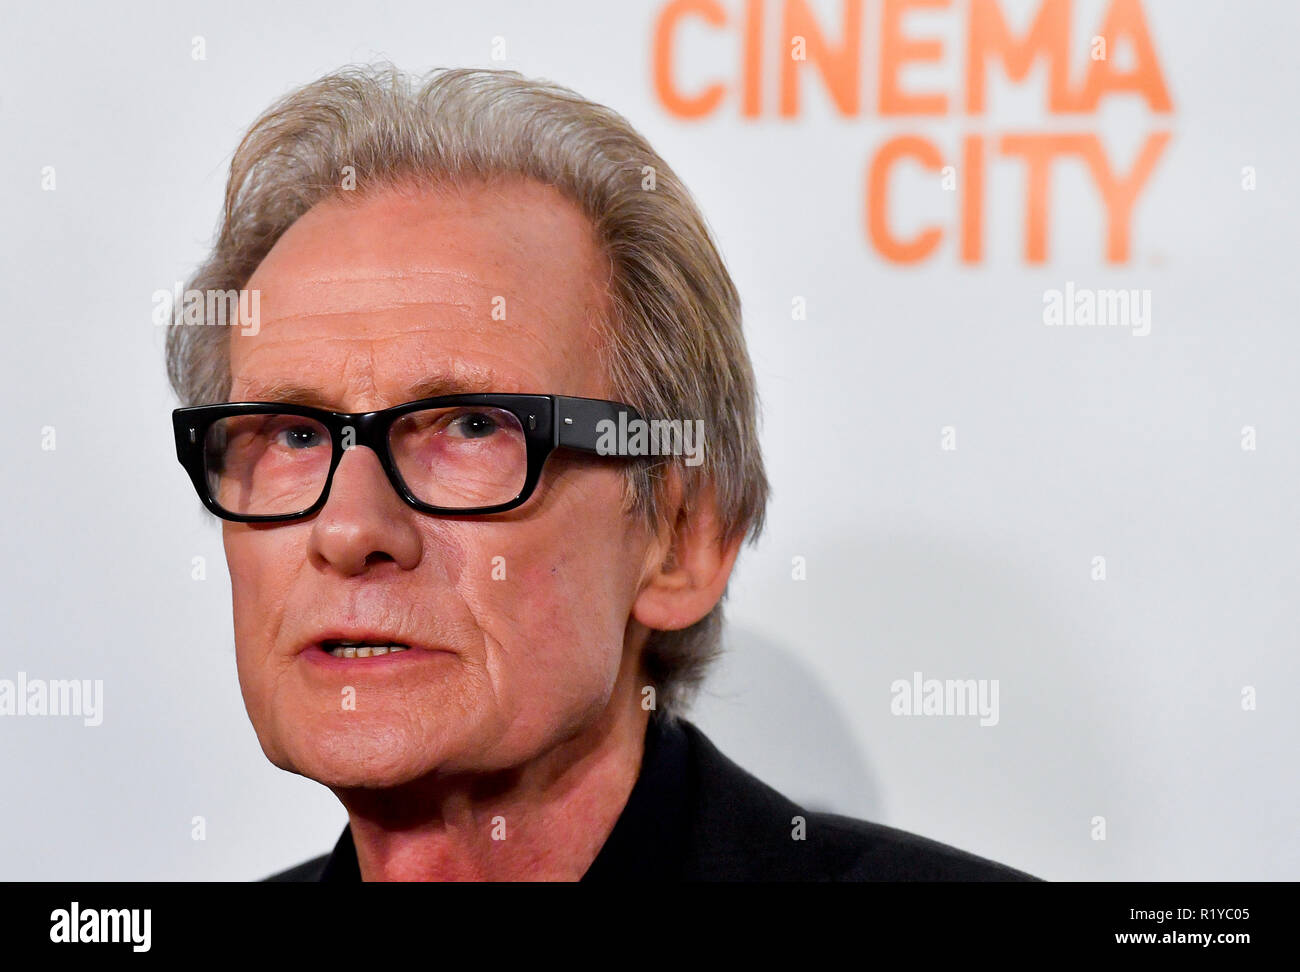 Prague, Czech Republic. 15th Nov, 2018. British actor Bill Nighy meets journalists prior to the benefit screening of the film Love Actually by Richard Curtis in Cinema City Chodov in Prague, Czech Republic, on Thursday, November 15, 2018. Credit: Vit Simanek/CTK Photo/Alamy Live News - Stock Image